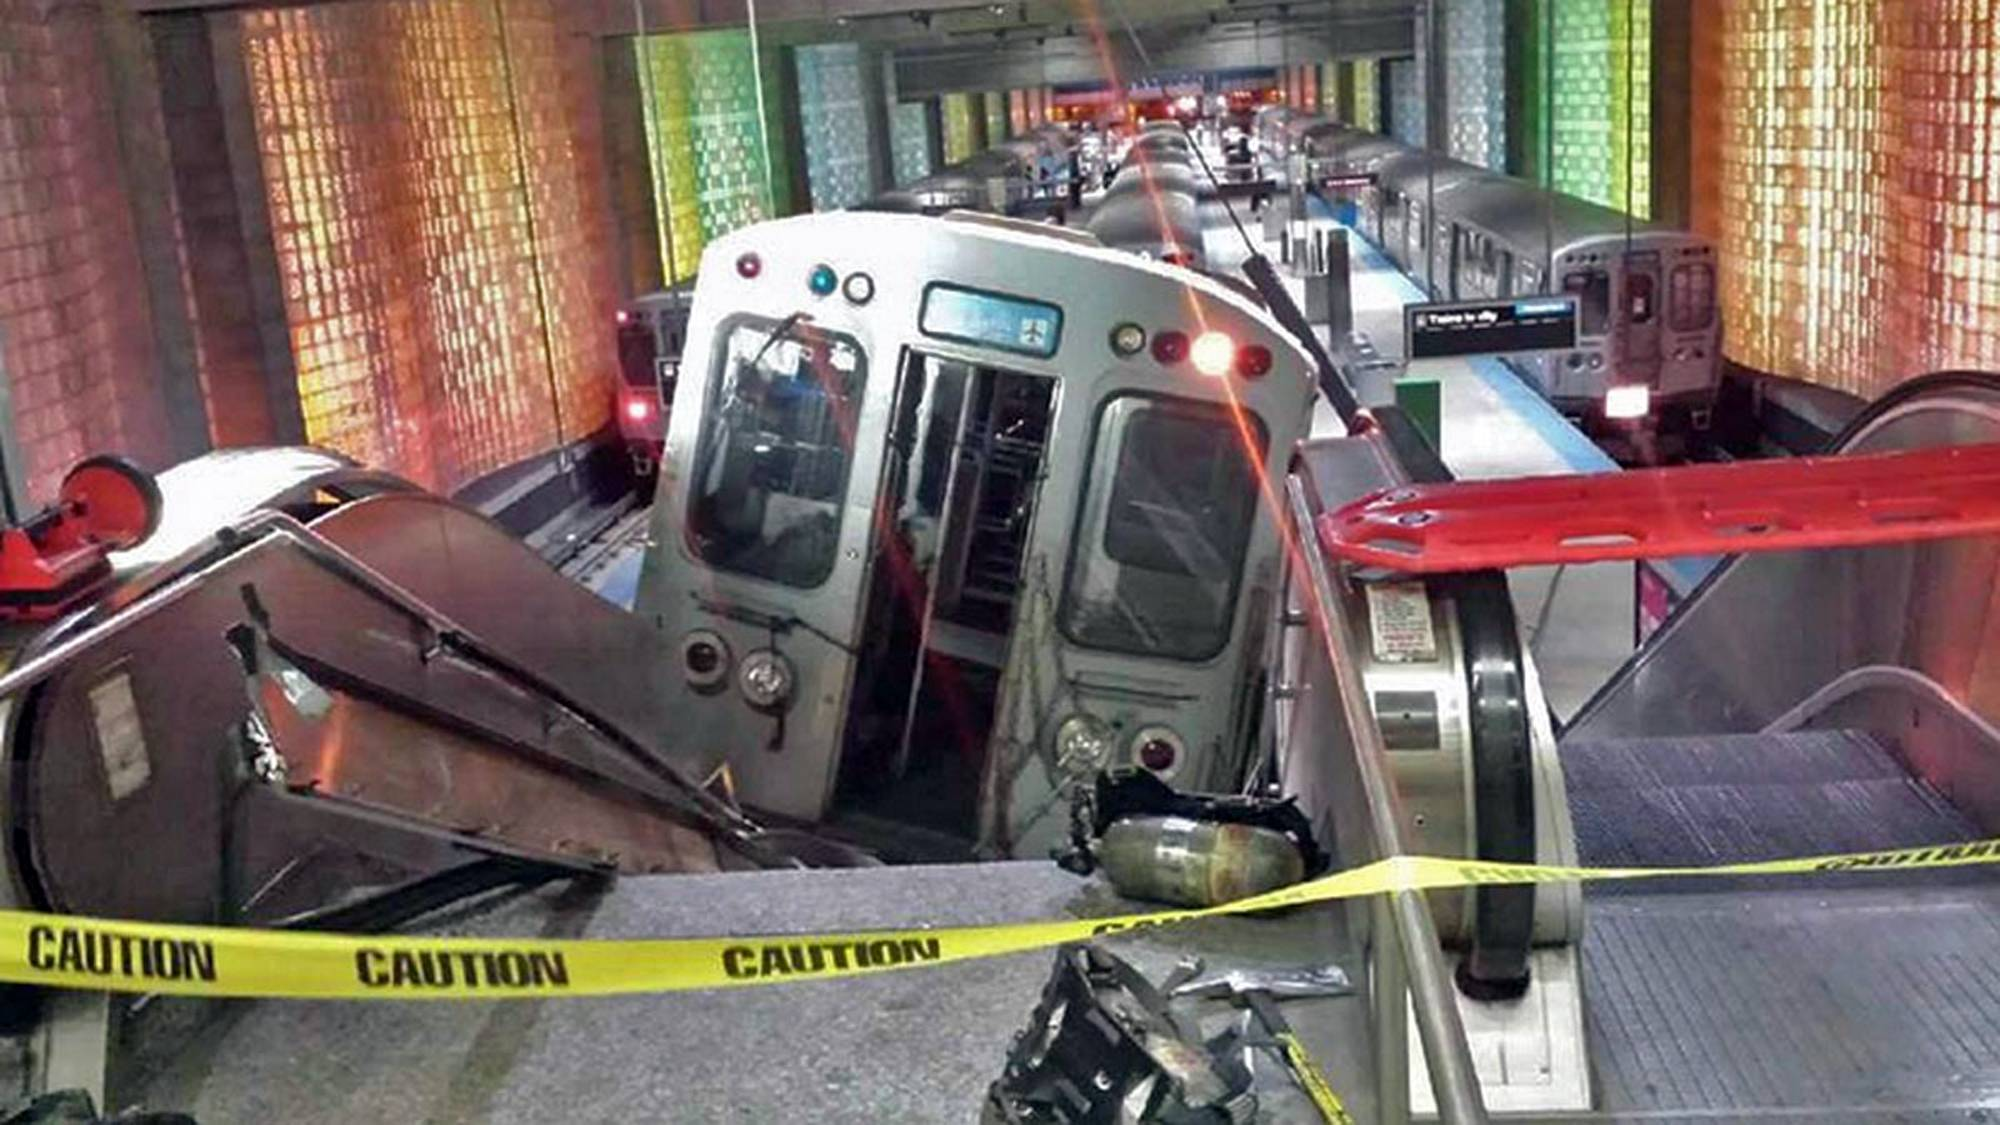 A device that triggered an automatic braking system was too close to the end of the track to prevent a crash at Chicago's O'Hare International Airport, according to a preliminary federal report released Monday.